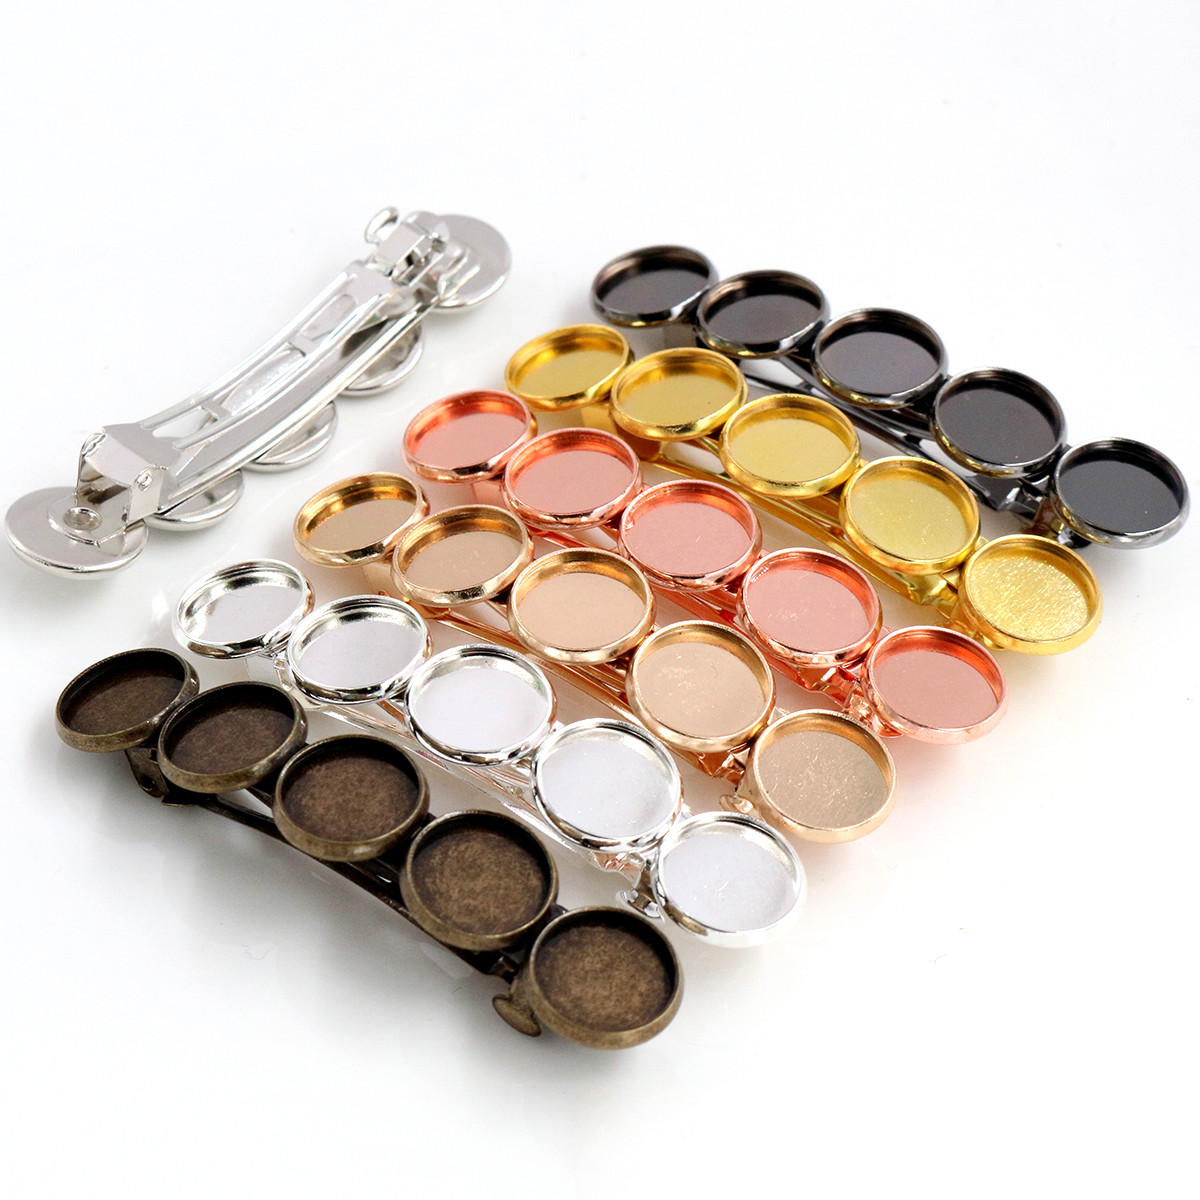 5pcs 12mm With 5 Cameo High Quality 7 Colors Plated Copper Material Hair Clips Hairpin Base Setting Cabochon Cameo